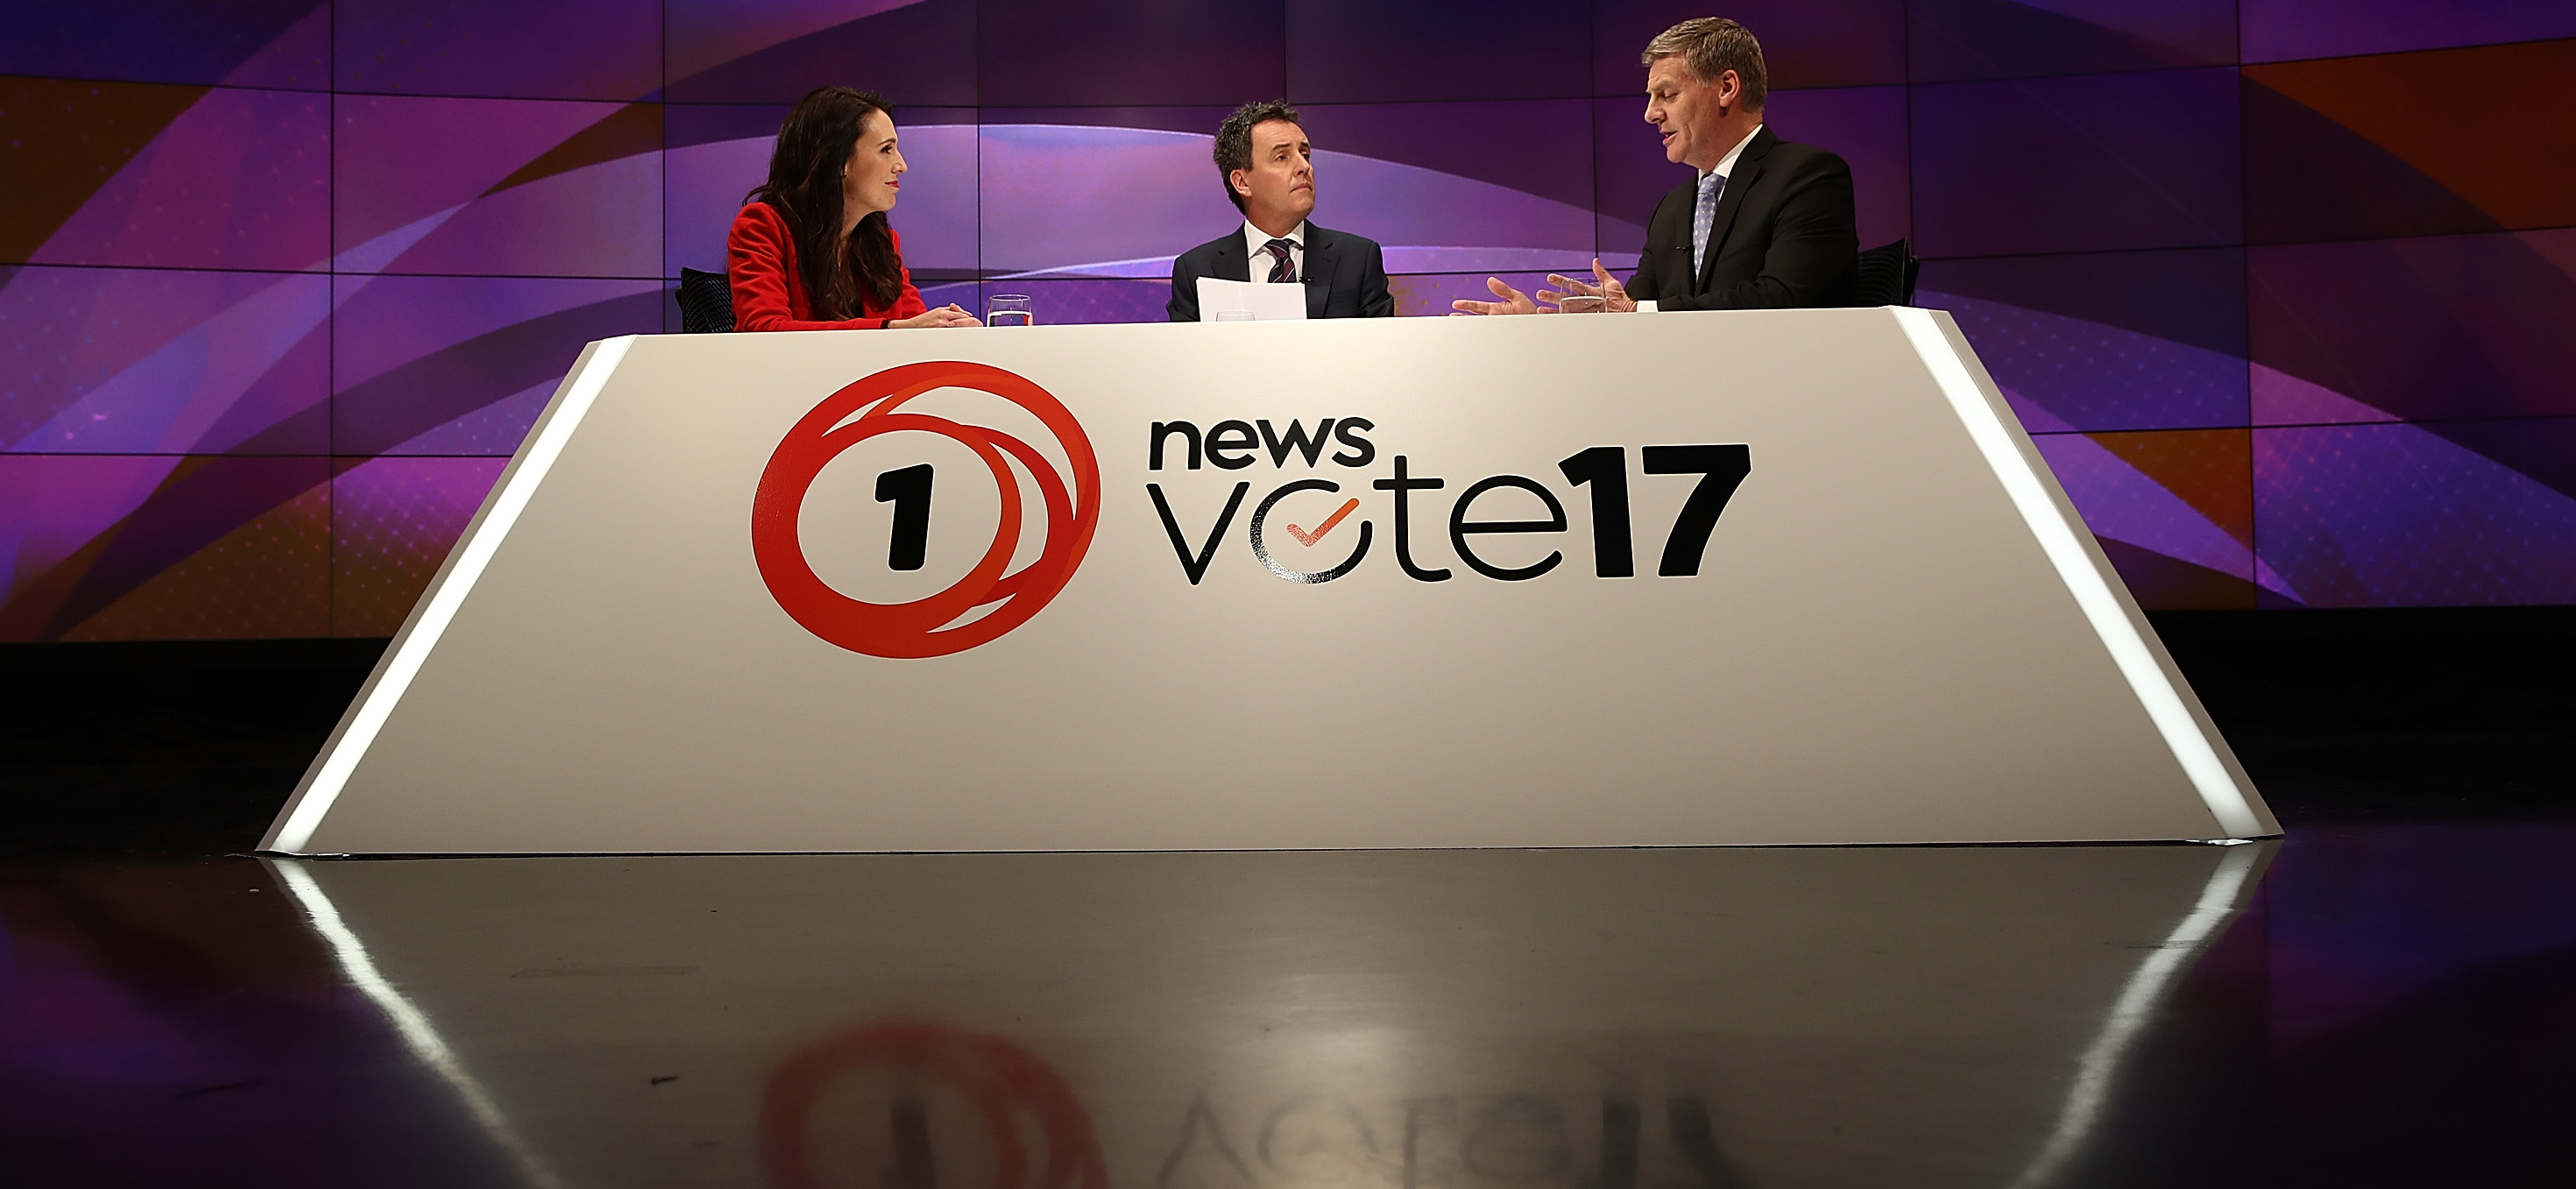 Labour leader Jacinda Ardern and New Zealand Prime Minister Bill English debate on TVNZ, September 2017 (Photo: Phil Walter/Getty Images)